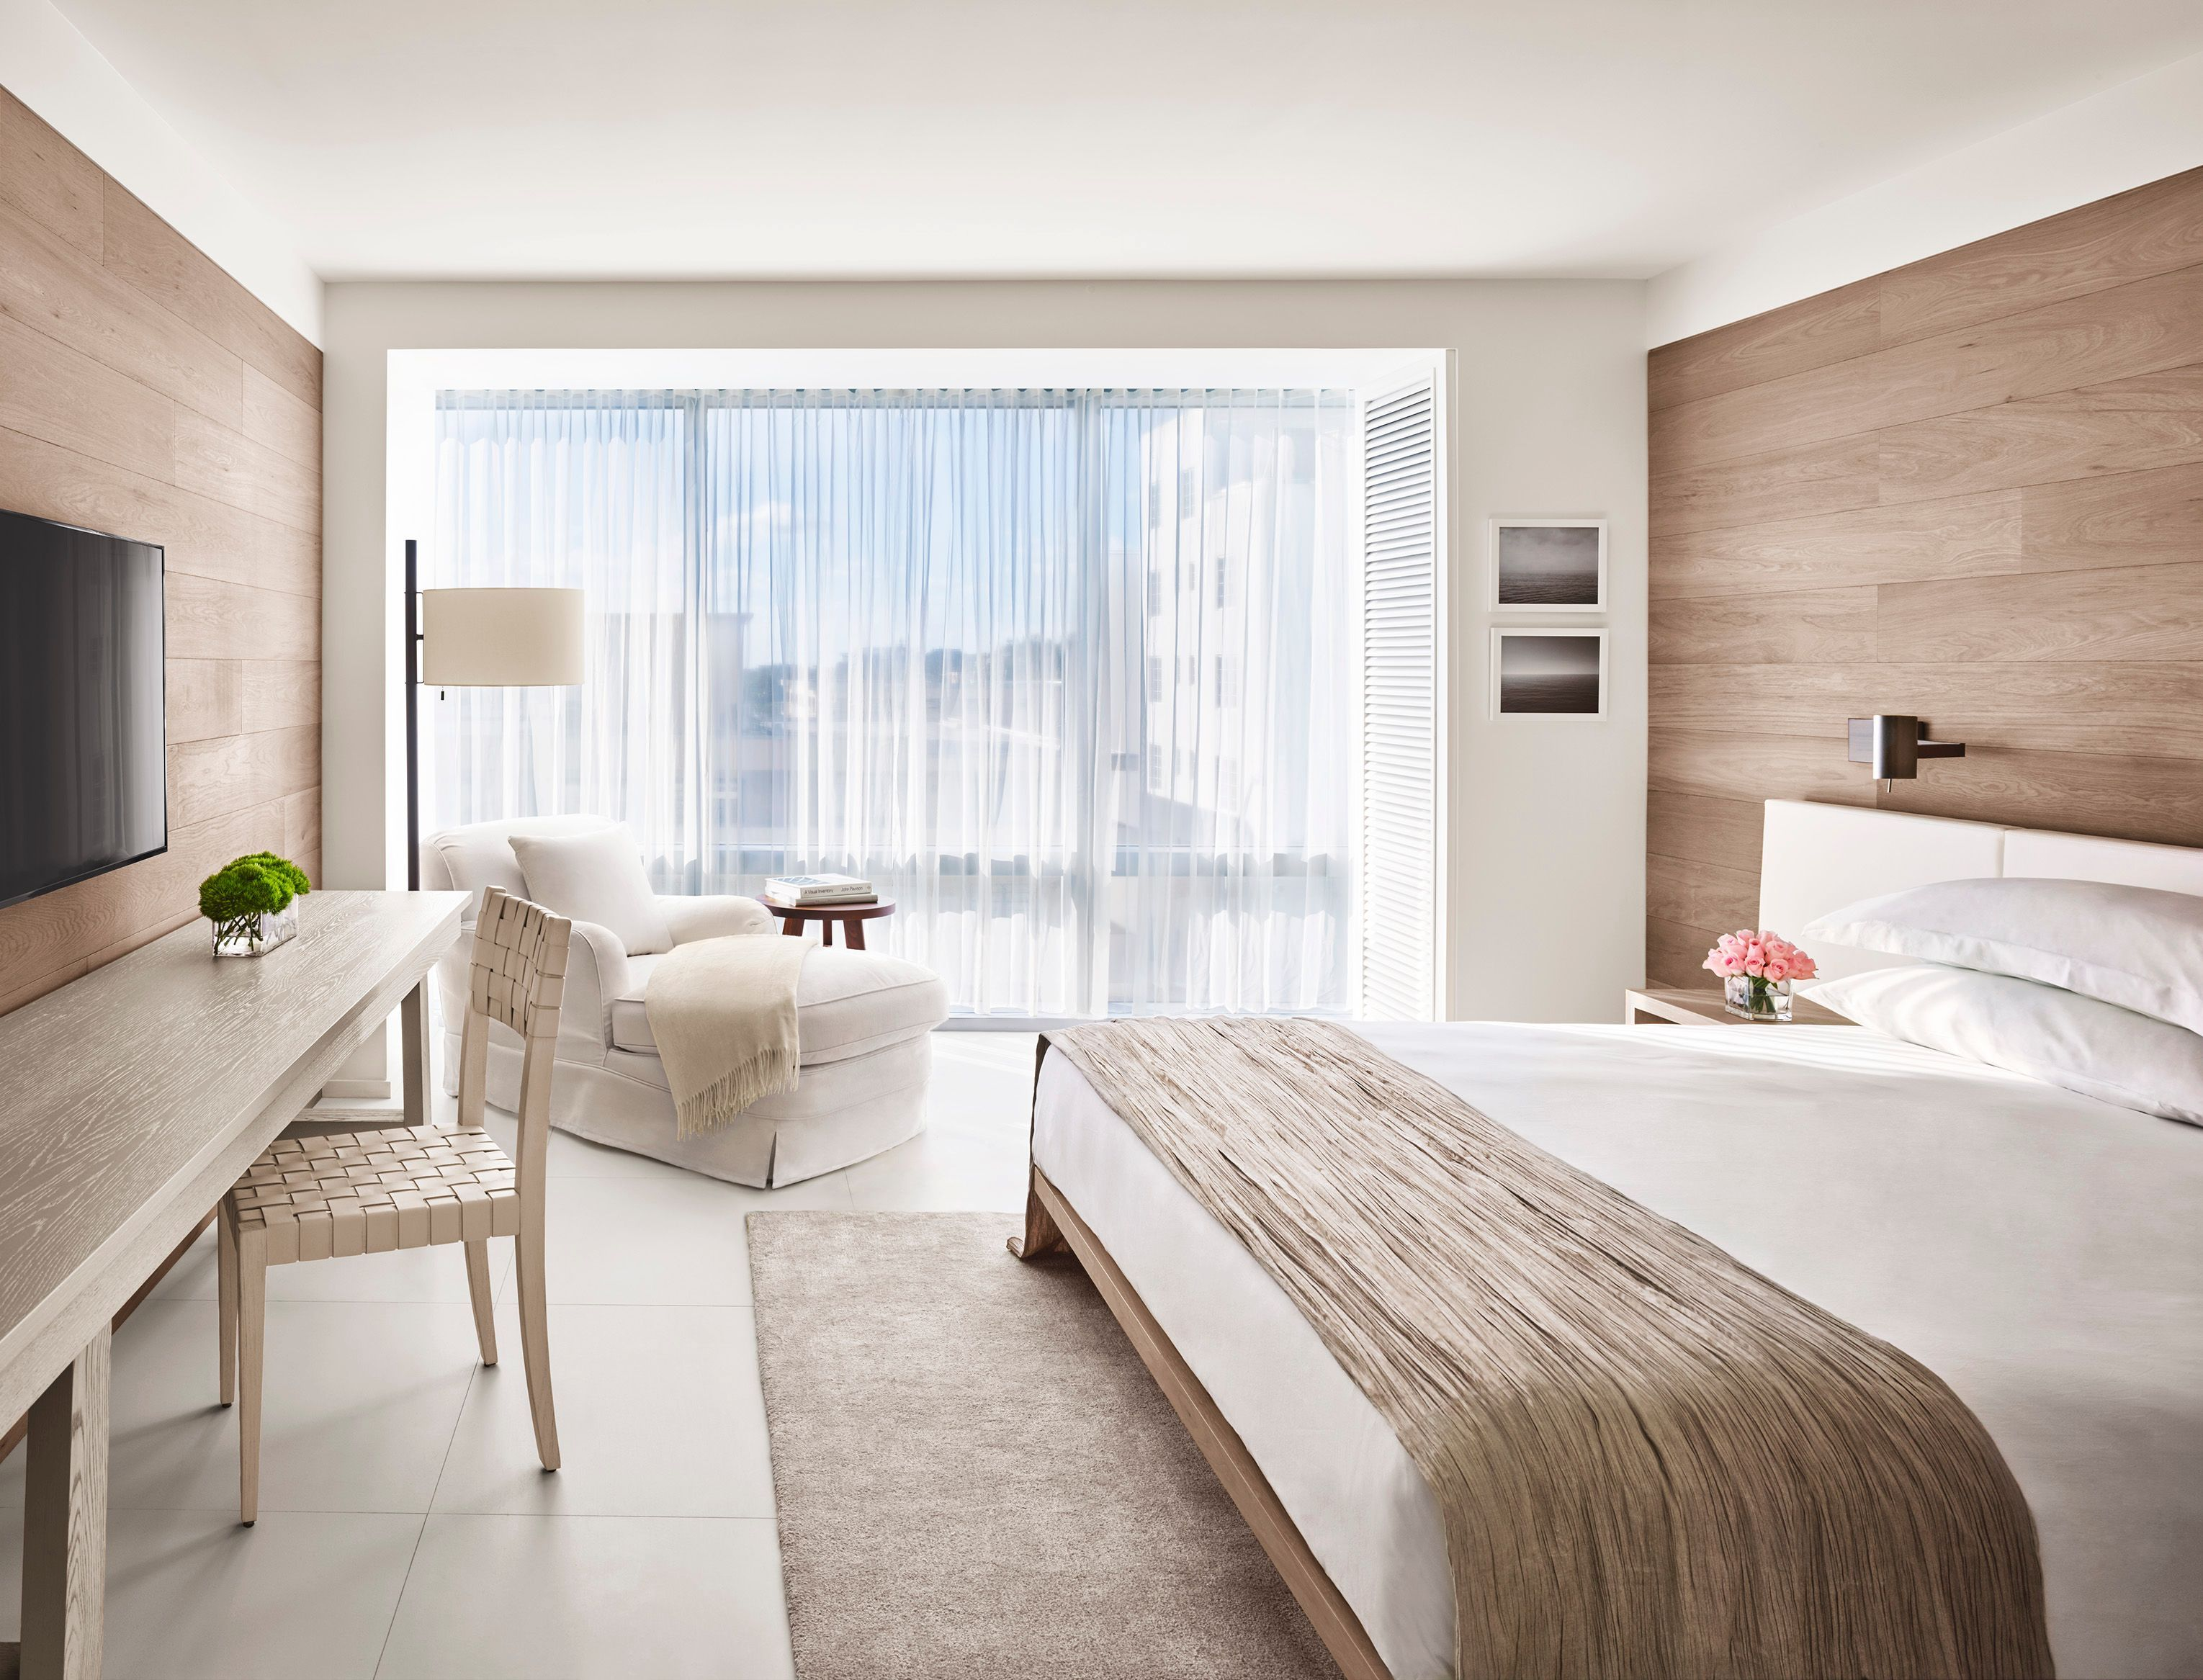 Yabu pushelberg the miami beach edition bedroom luxury for Small luxury boutique hotels